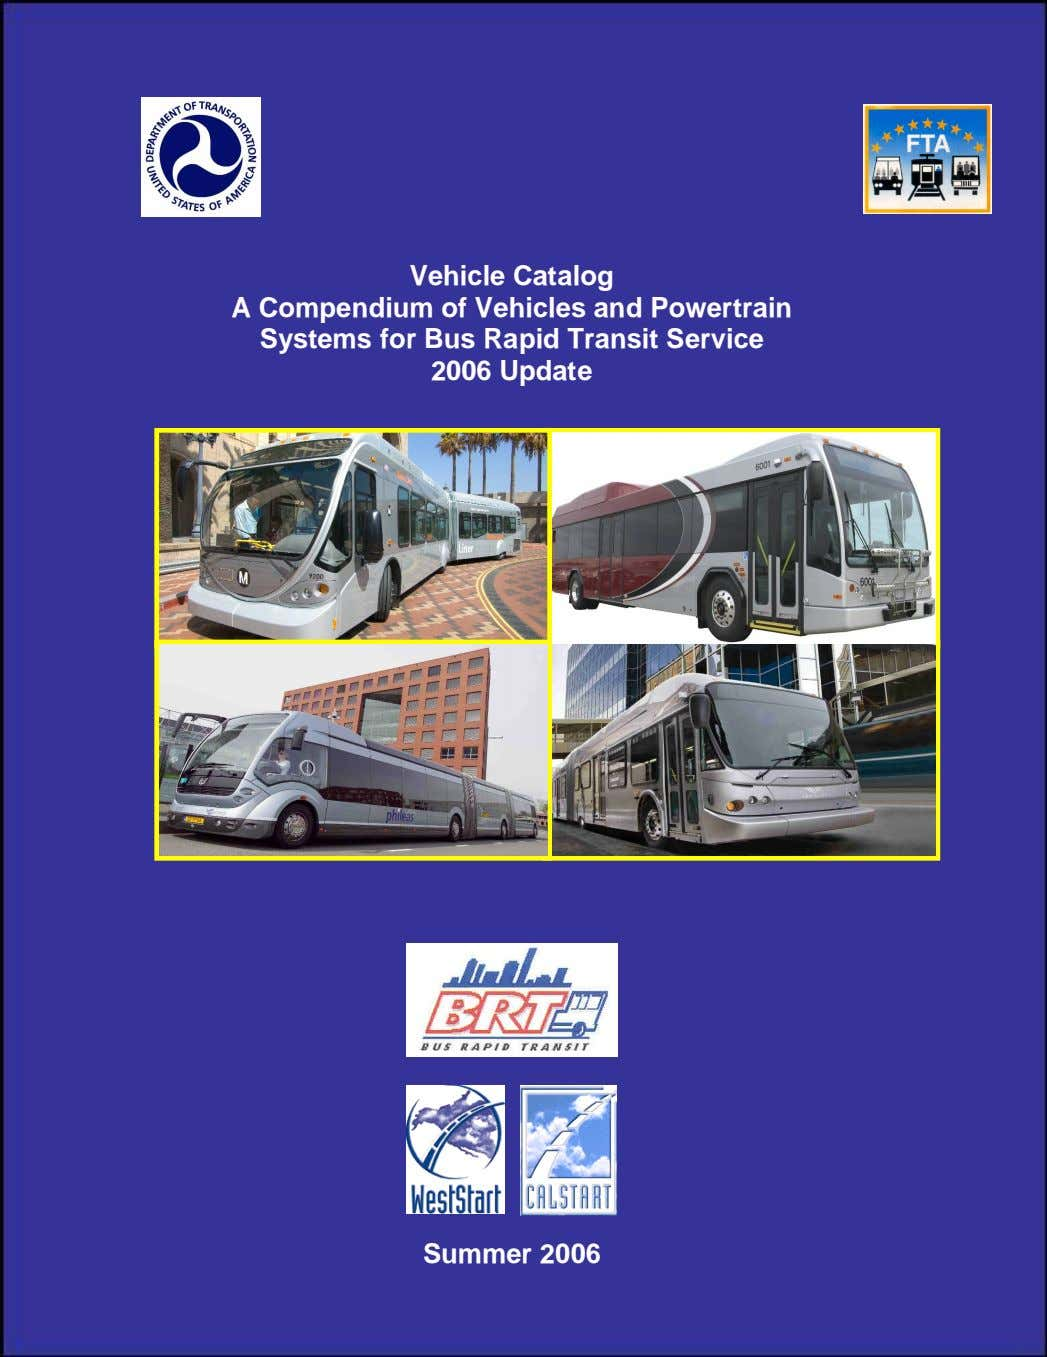 Vehicle Catalog A Compendium of Vehicles and Powertrain Systems for Bus Rapid Transit Service 2006